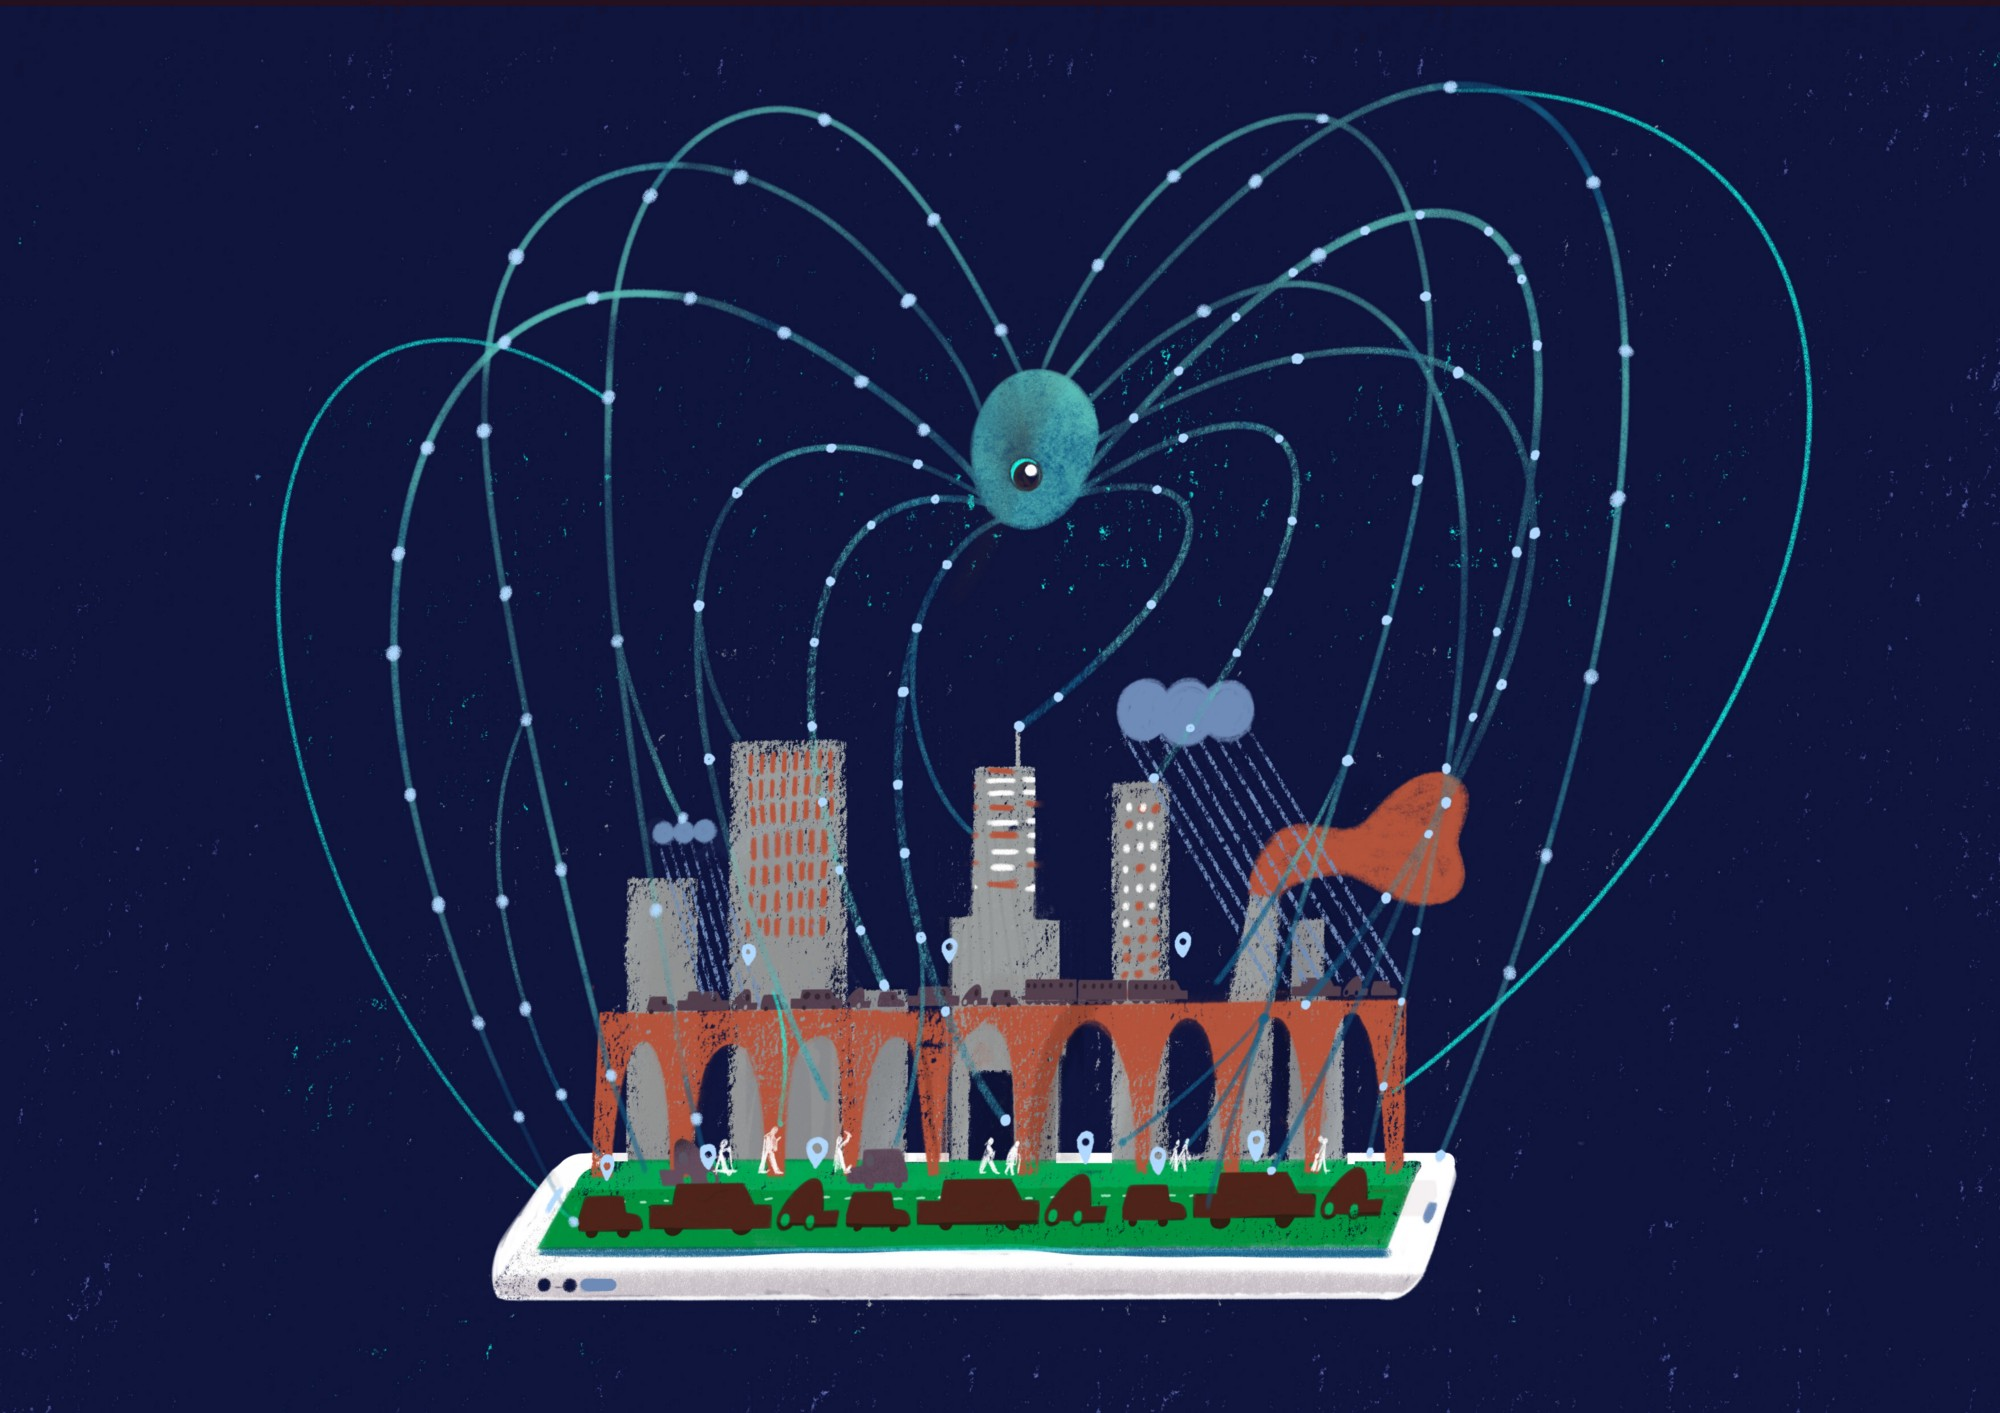 Illustration of a giant, surveilling spider with many legs spreading into a digitised city popping up from a smartphone